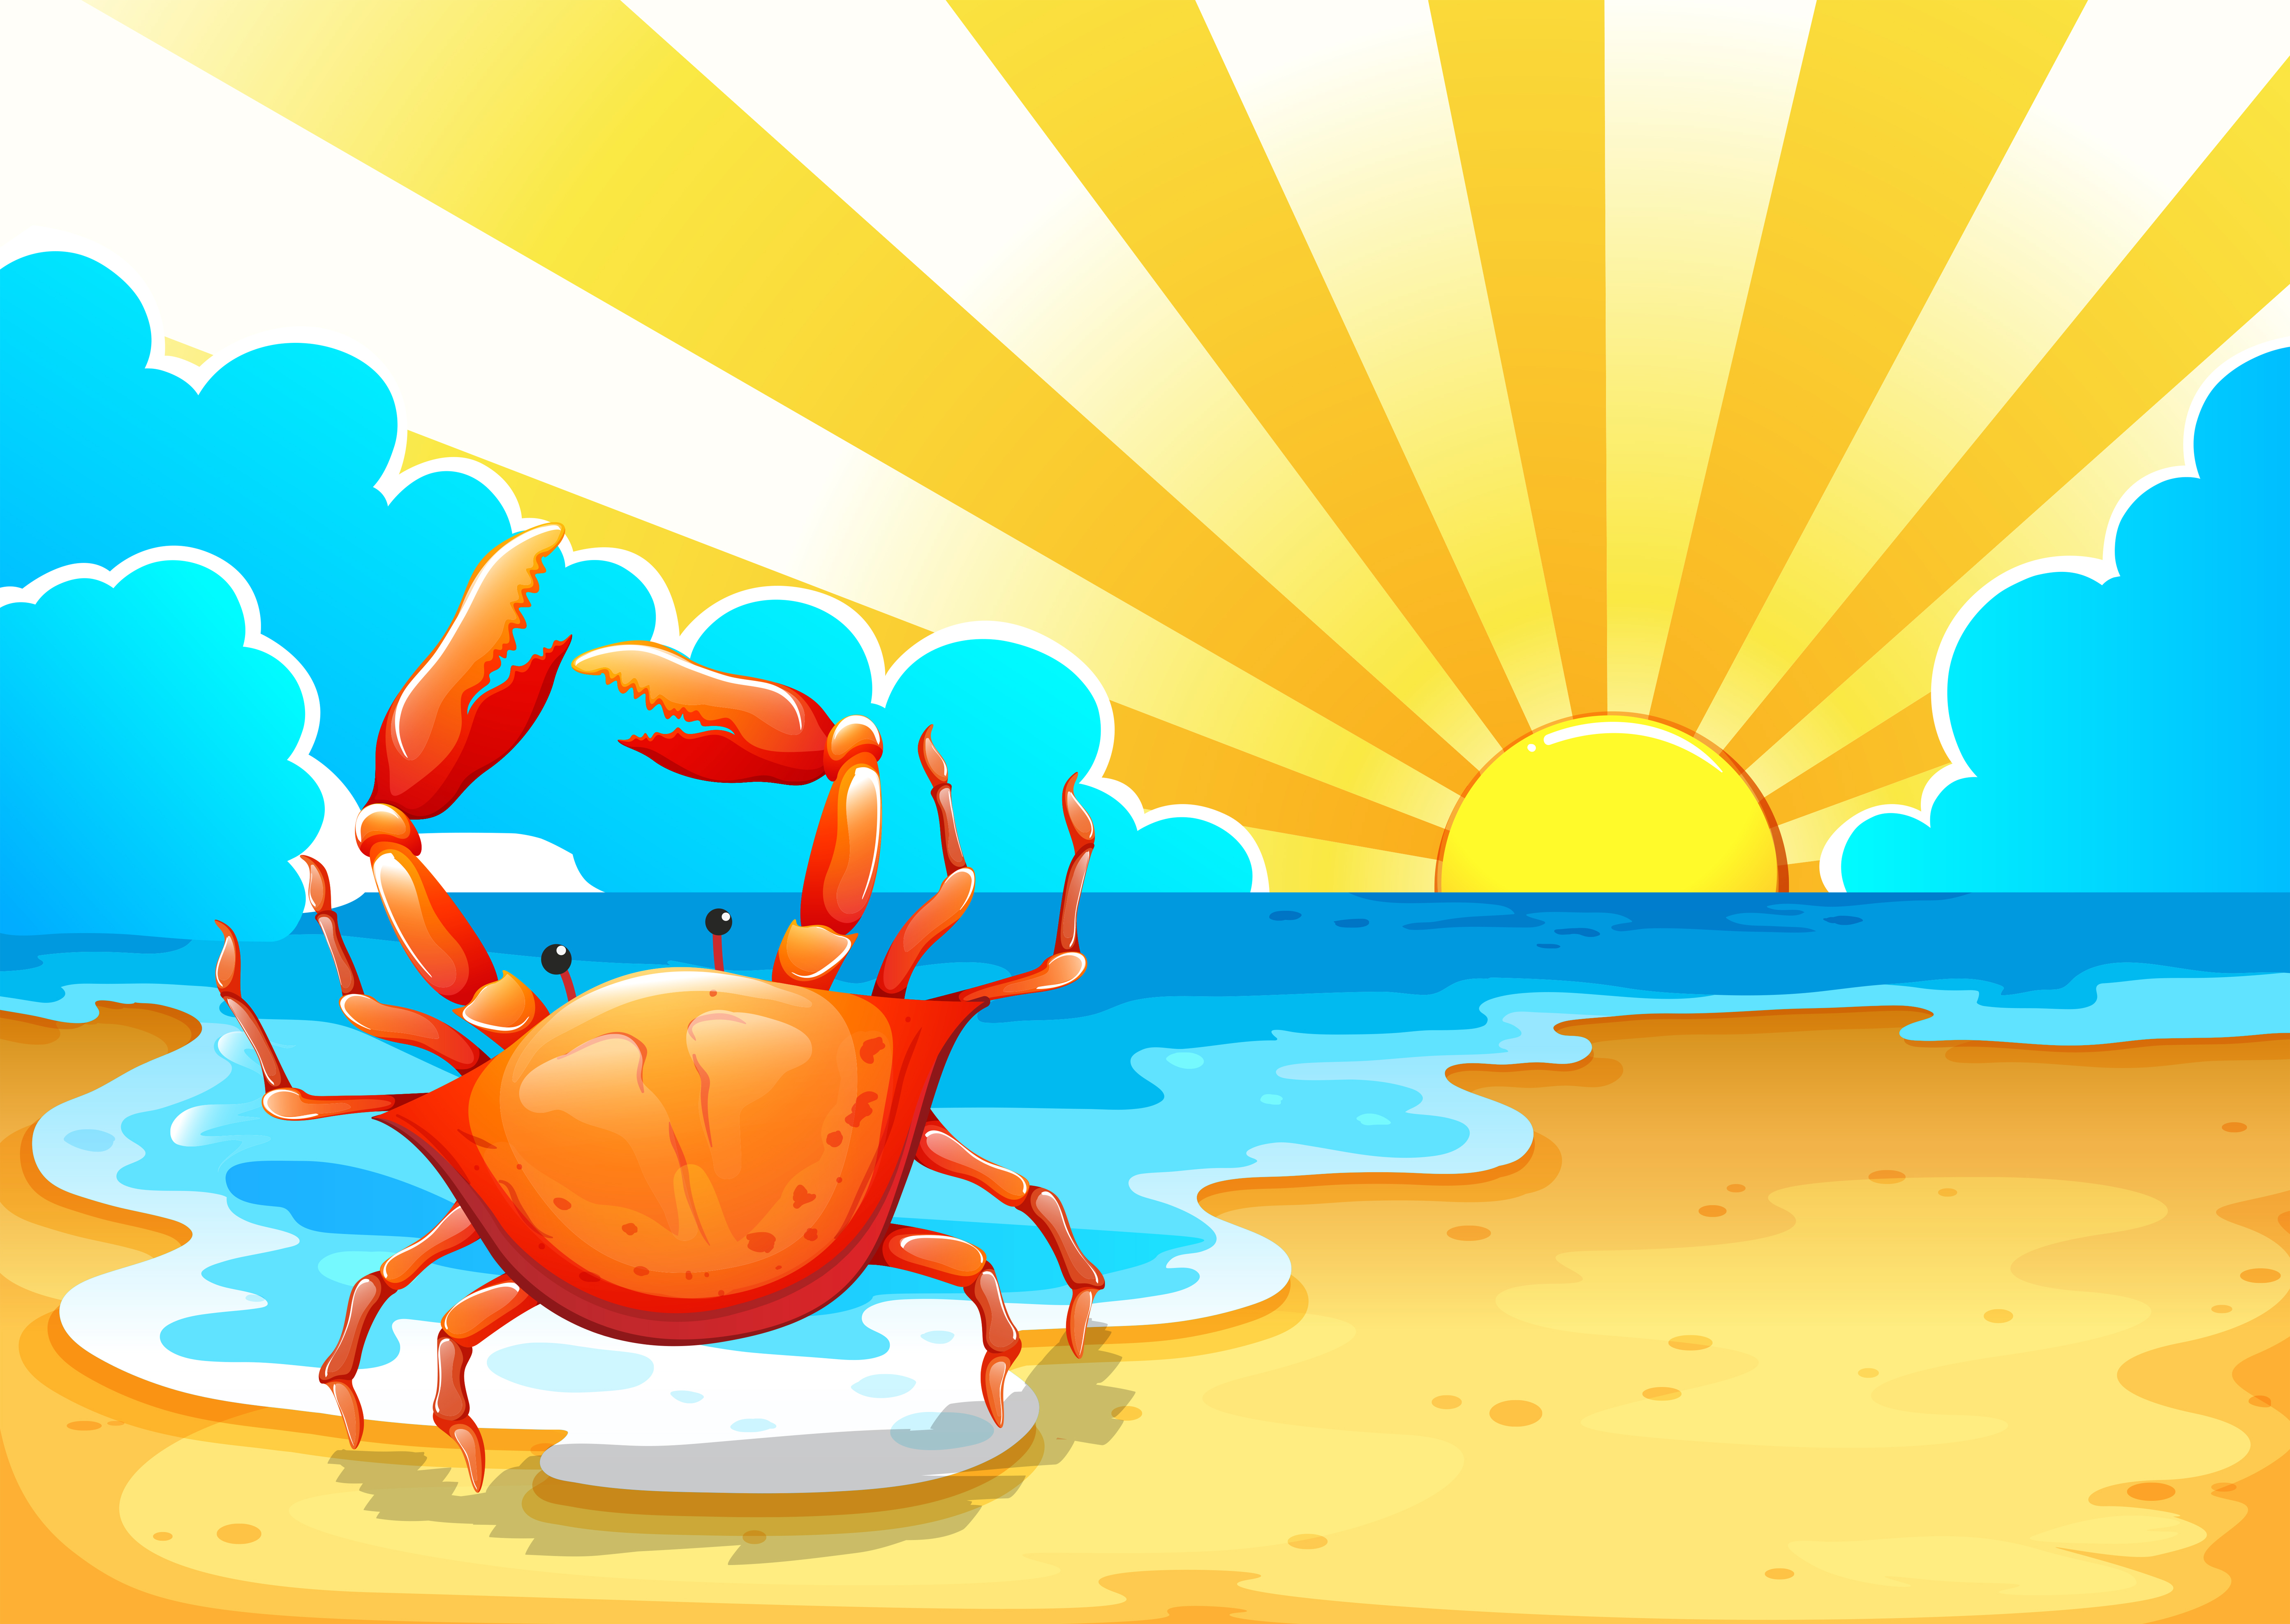 A beach with a crab - Download Free Vectors, Clipart ...